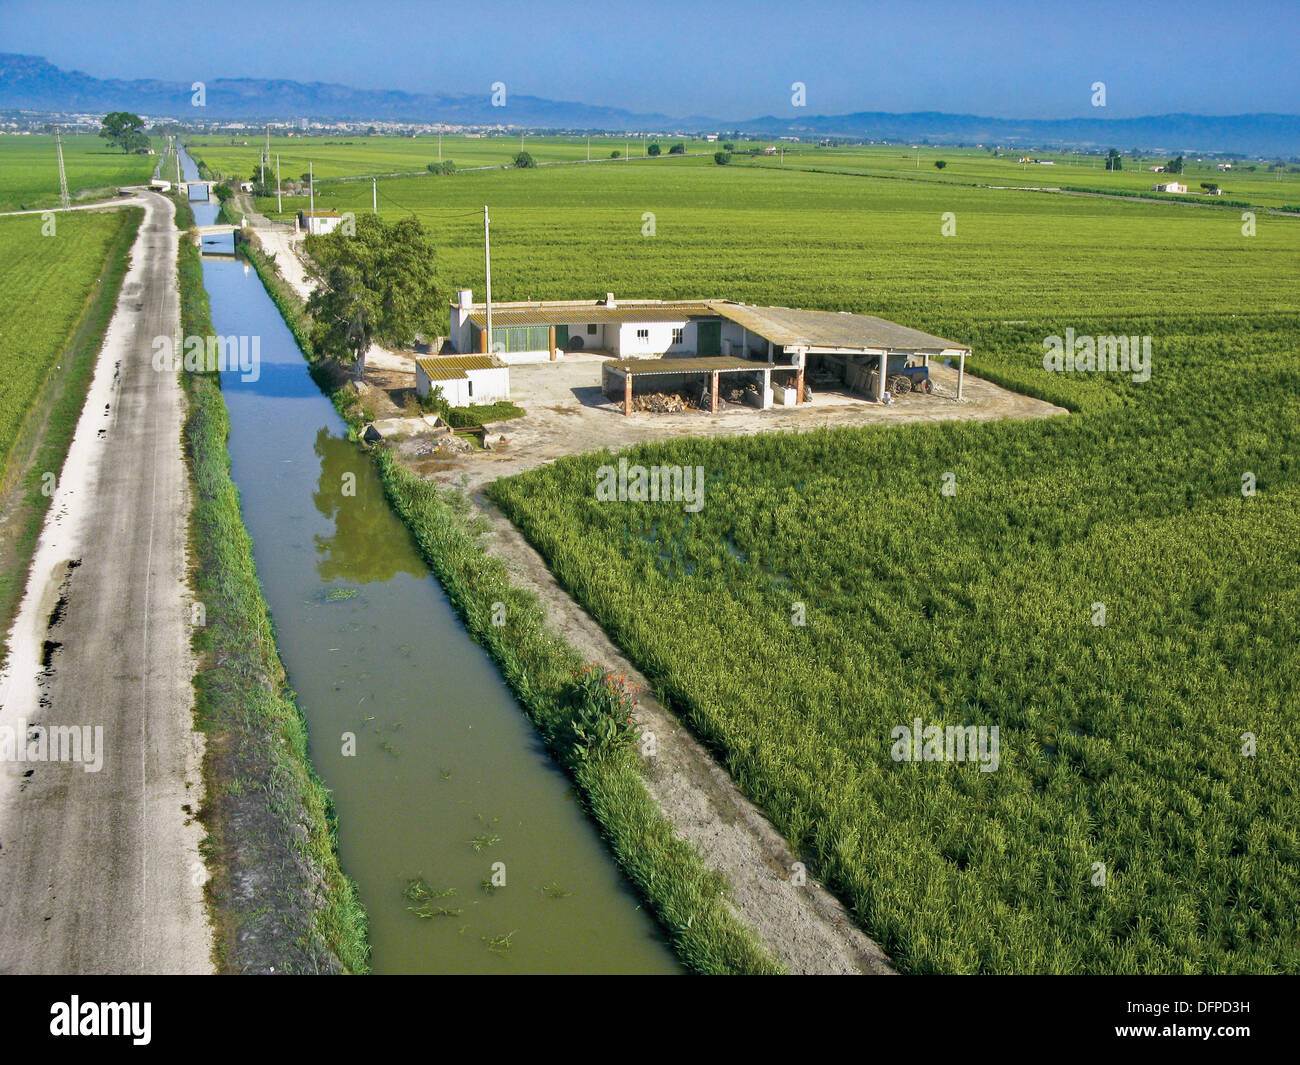 Agricultural Irrigation Canal : Aerial view of rice fields in ebro delta and irrigation